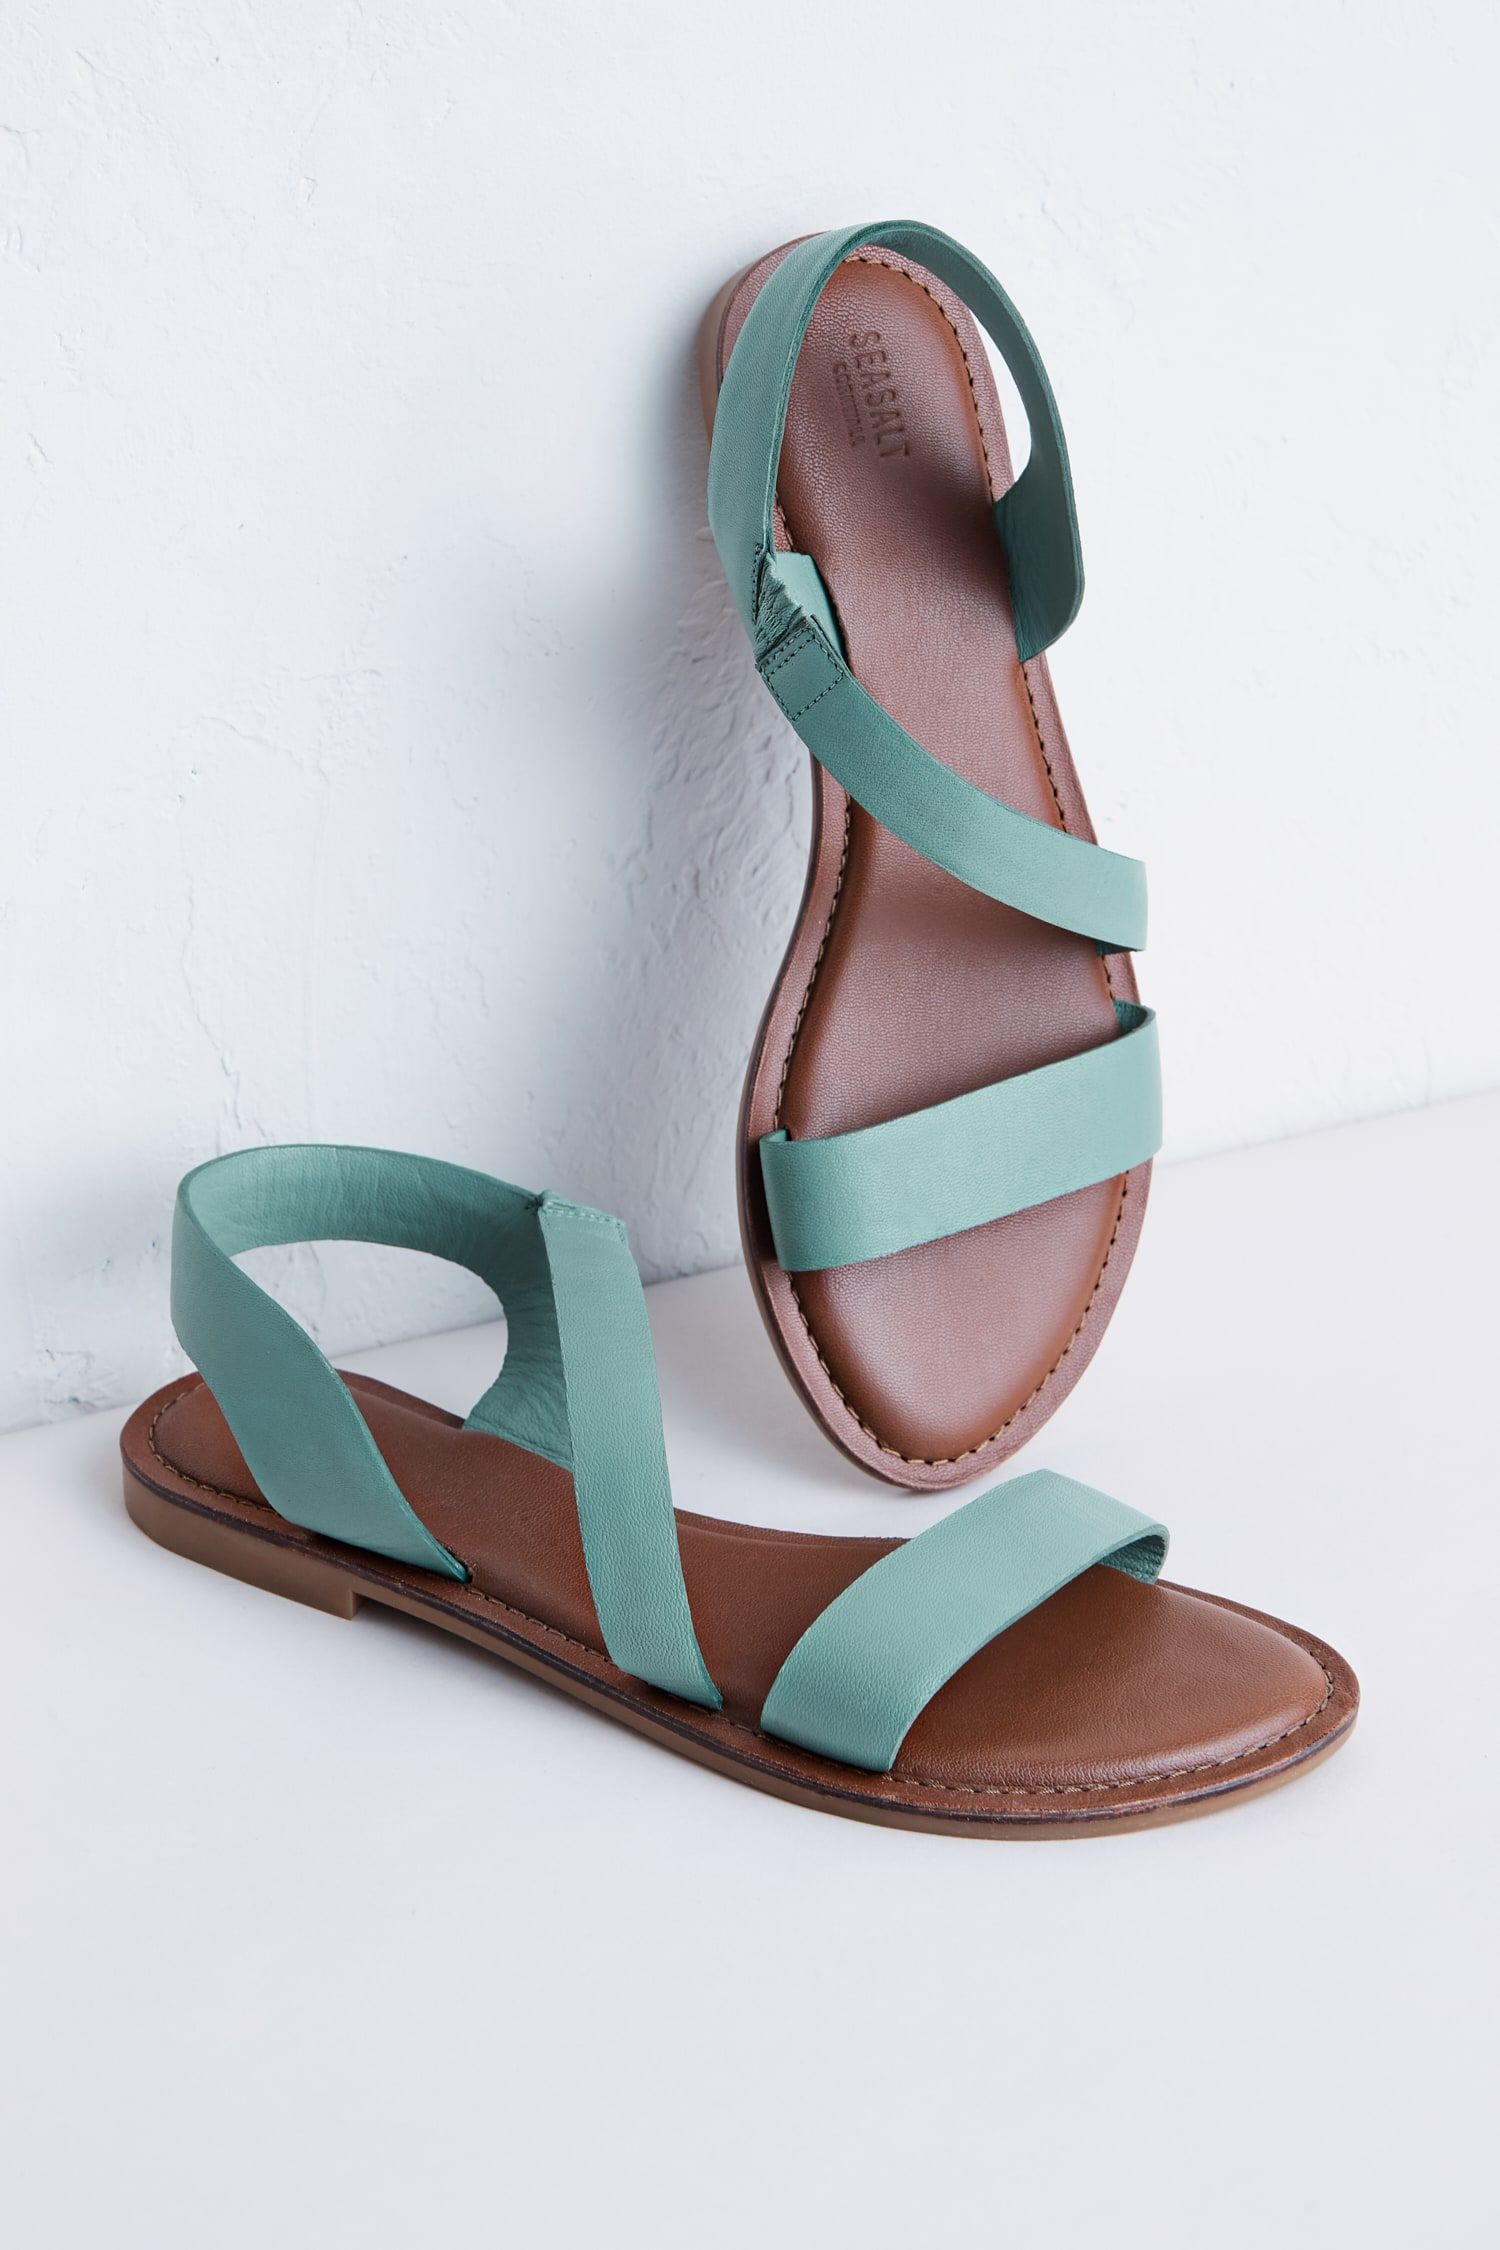 A lovely flat sandal in beautiful soft leather, Seasalt